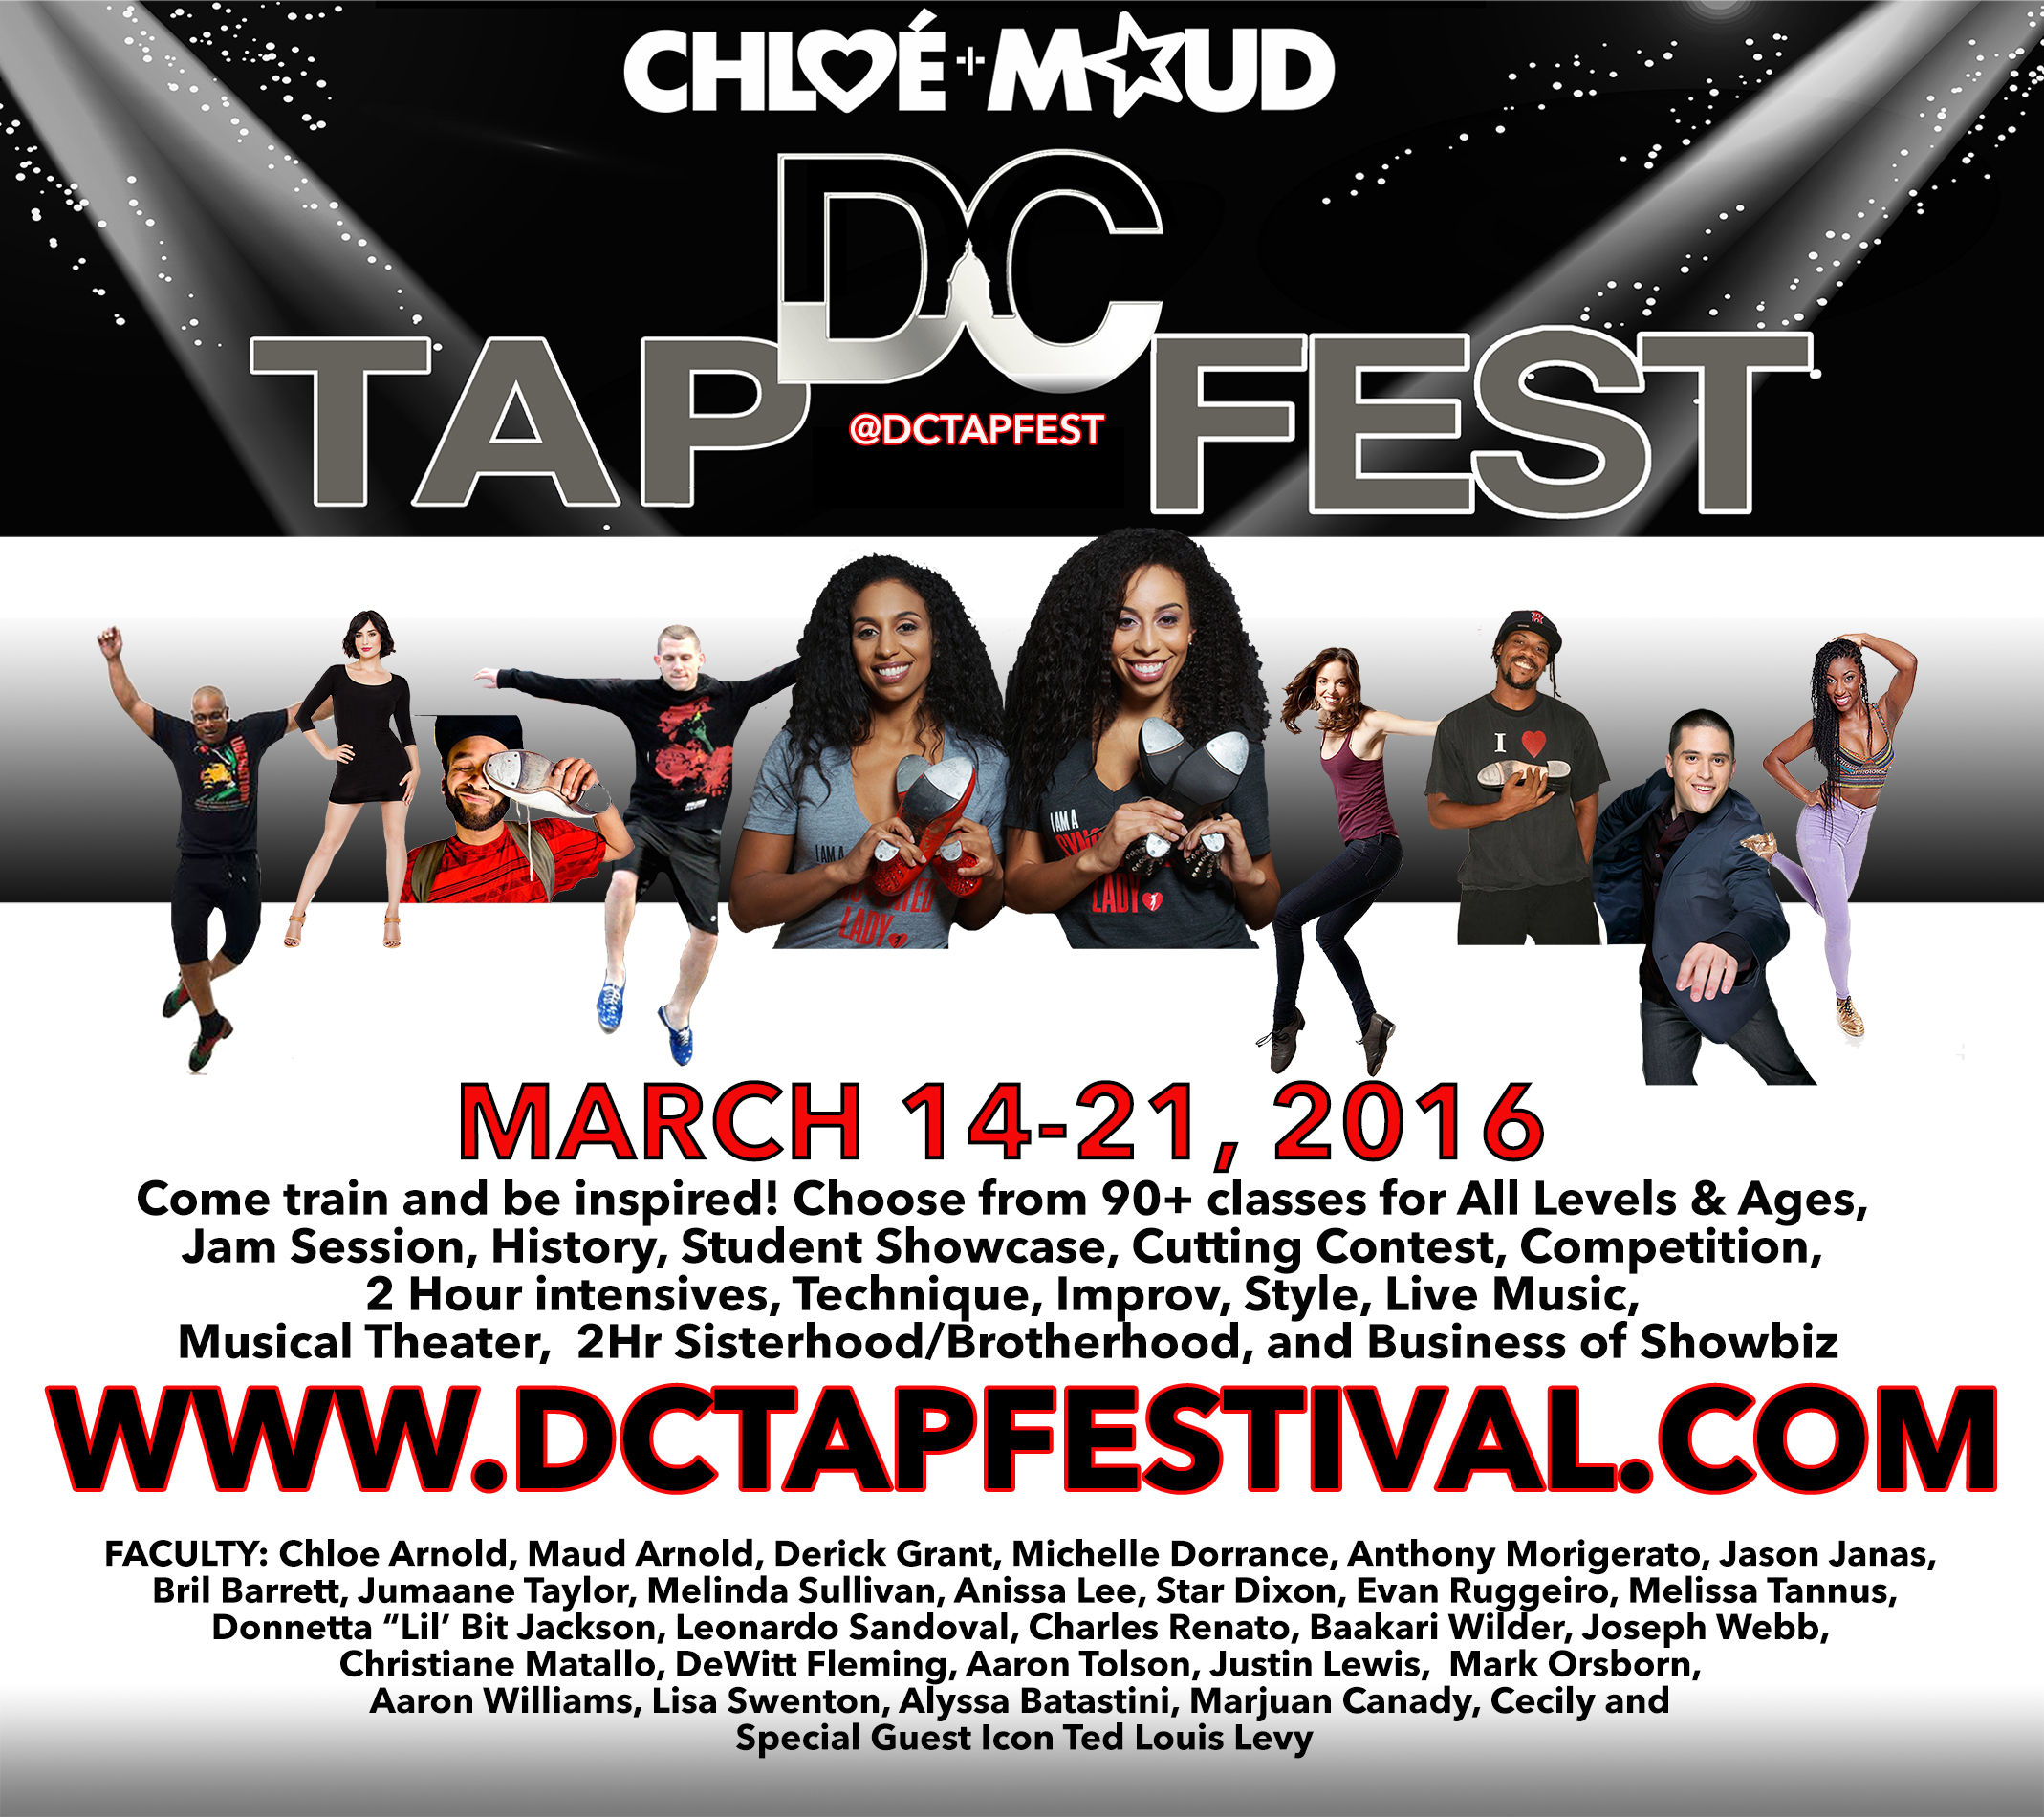 OPERATION: TAP had the opportunity to sit down with Chloe and Maud Arnold and talk about the 8th annual DC TAP FEST! Check out all of the details below!